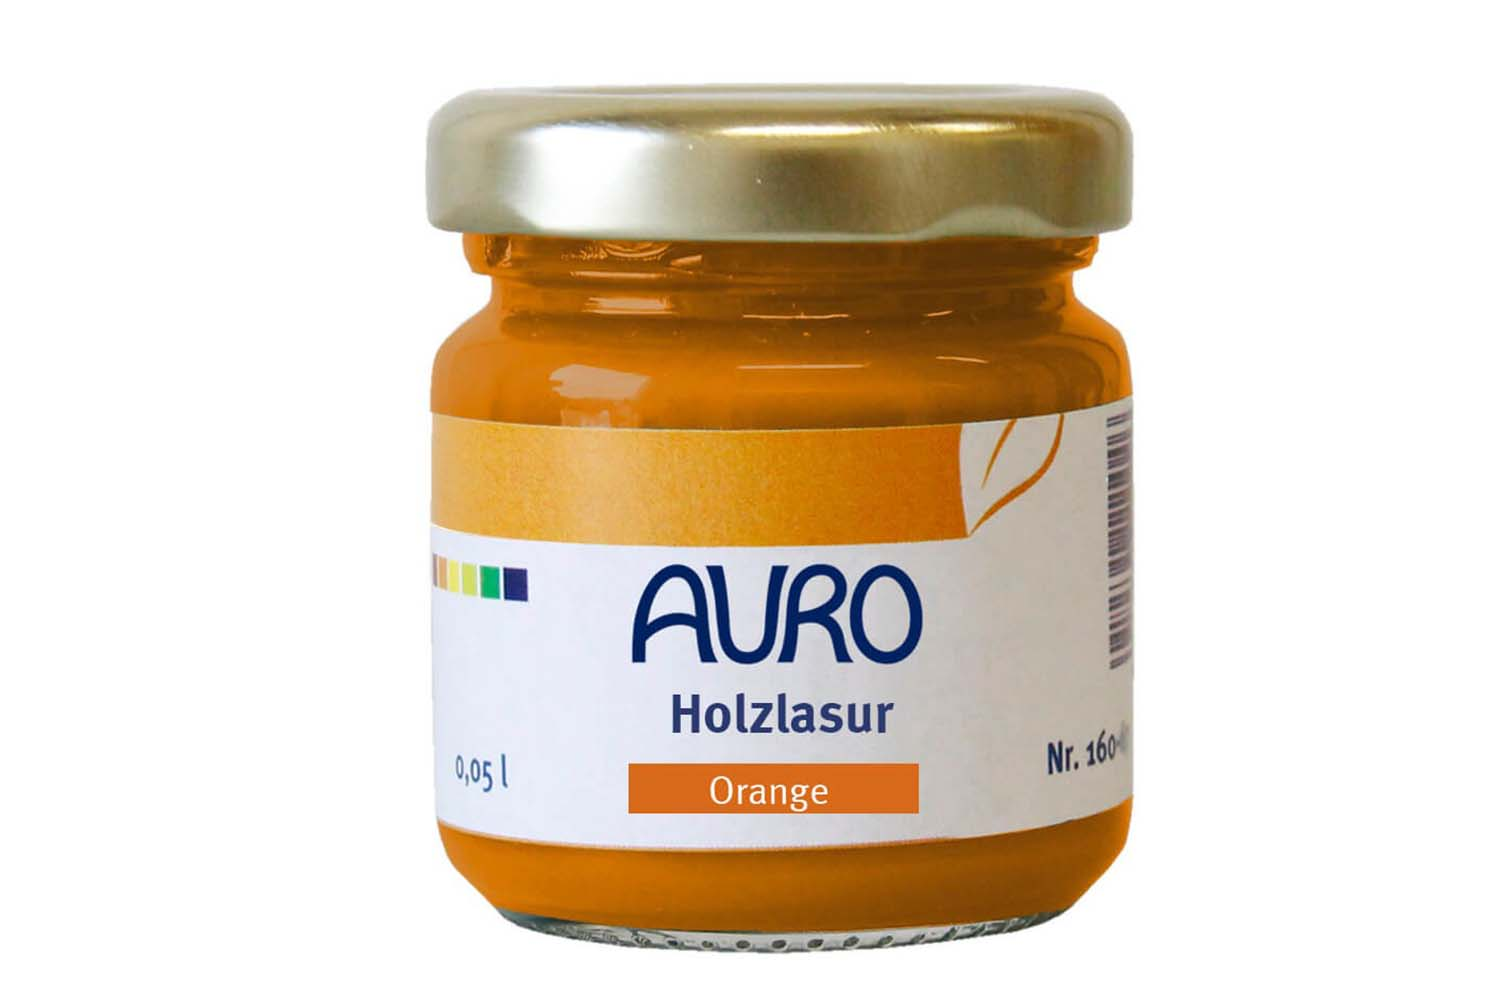 Auro Holzlasur Aqua Nr. 160 - Orange